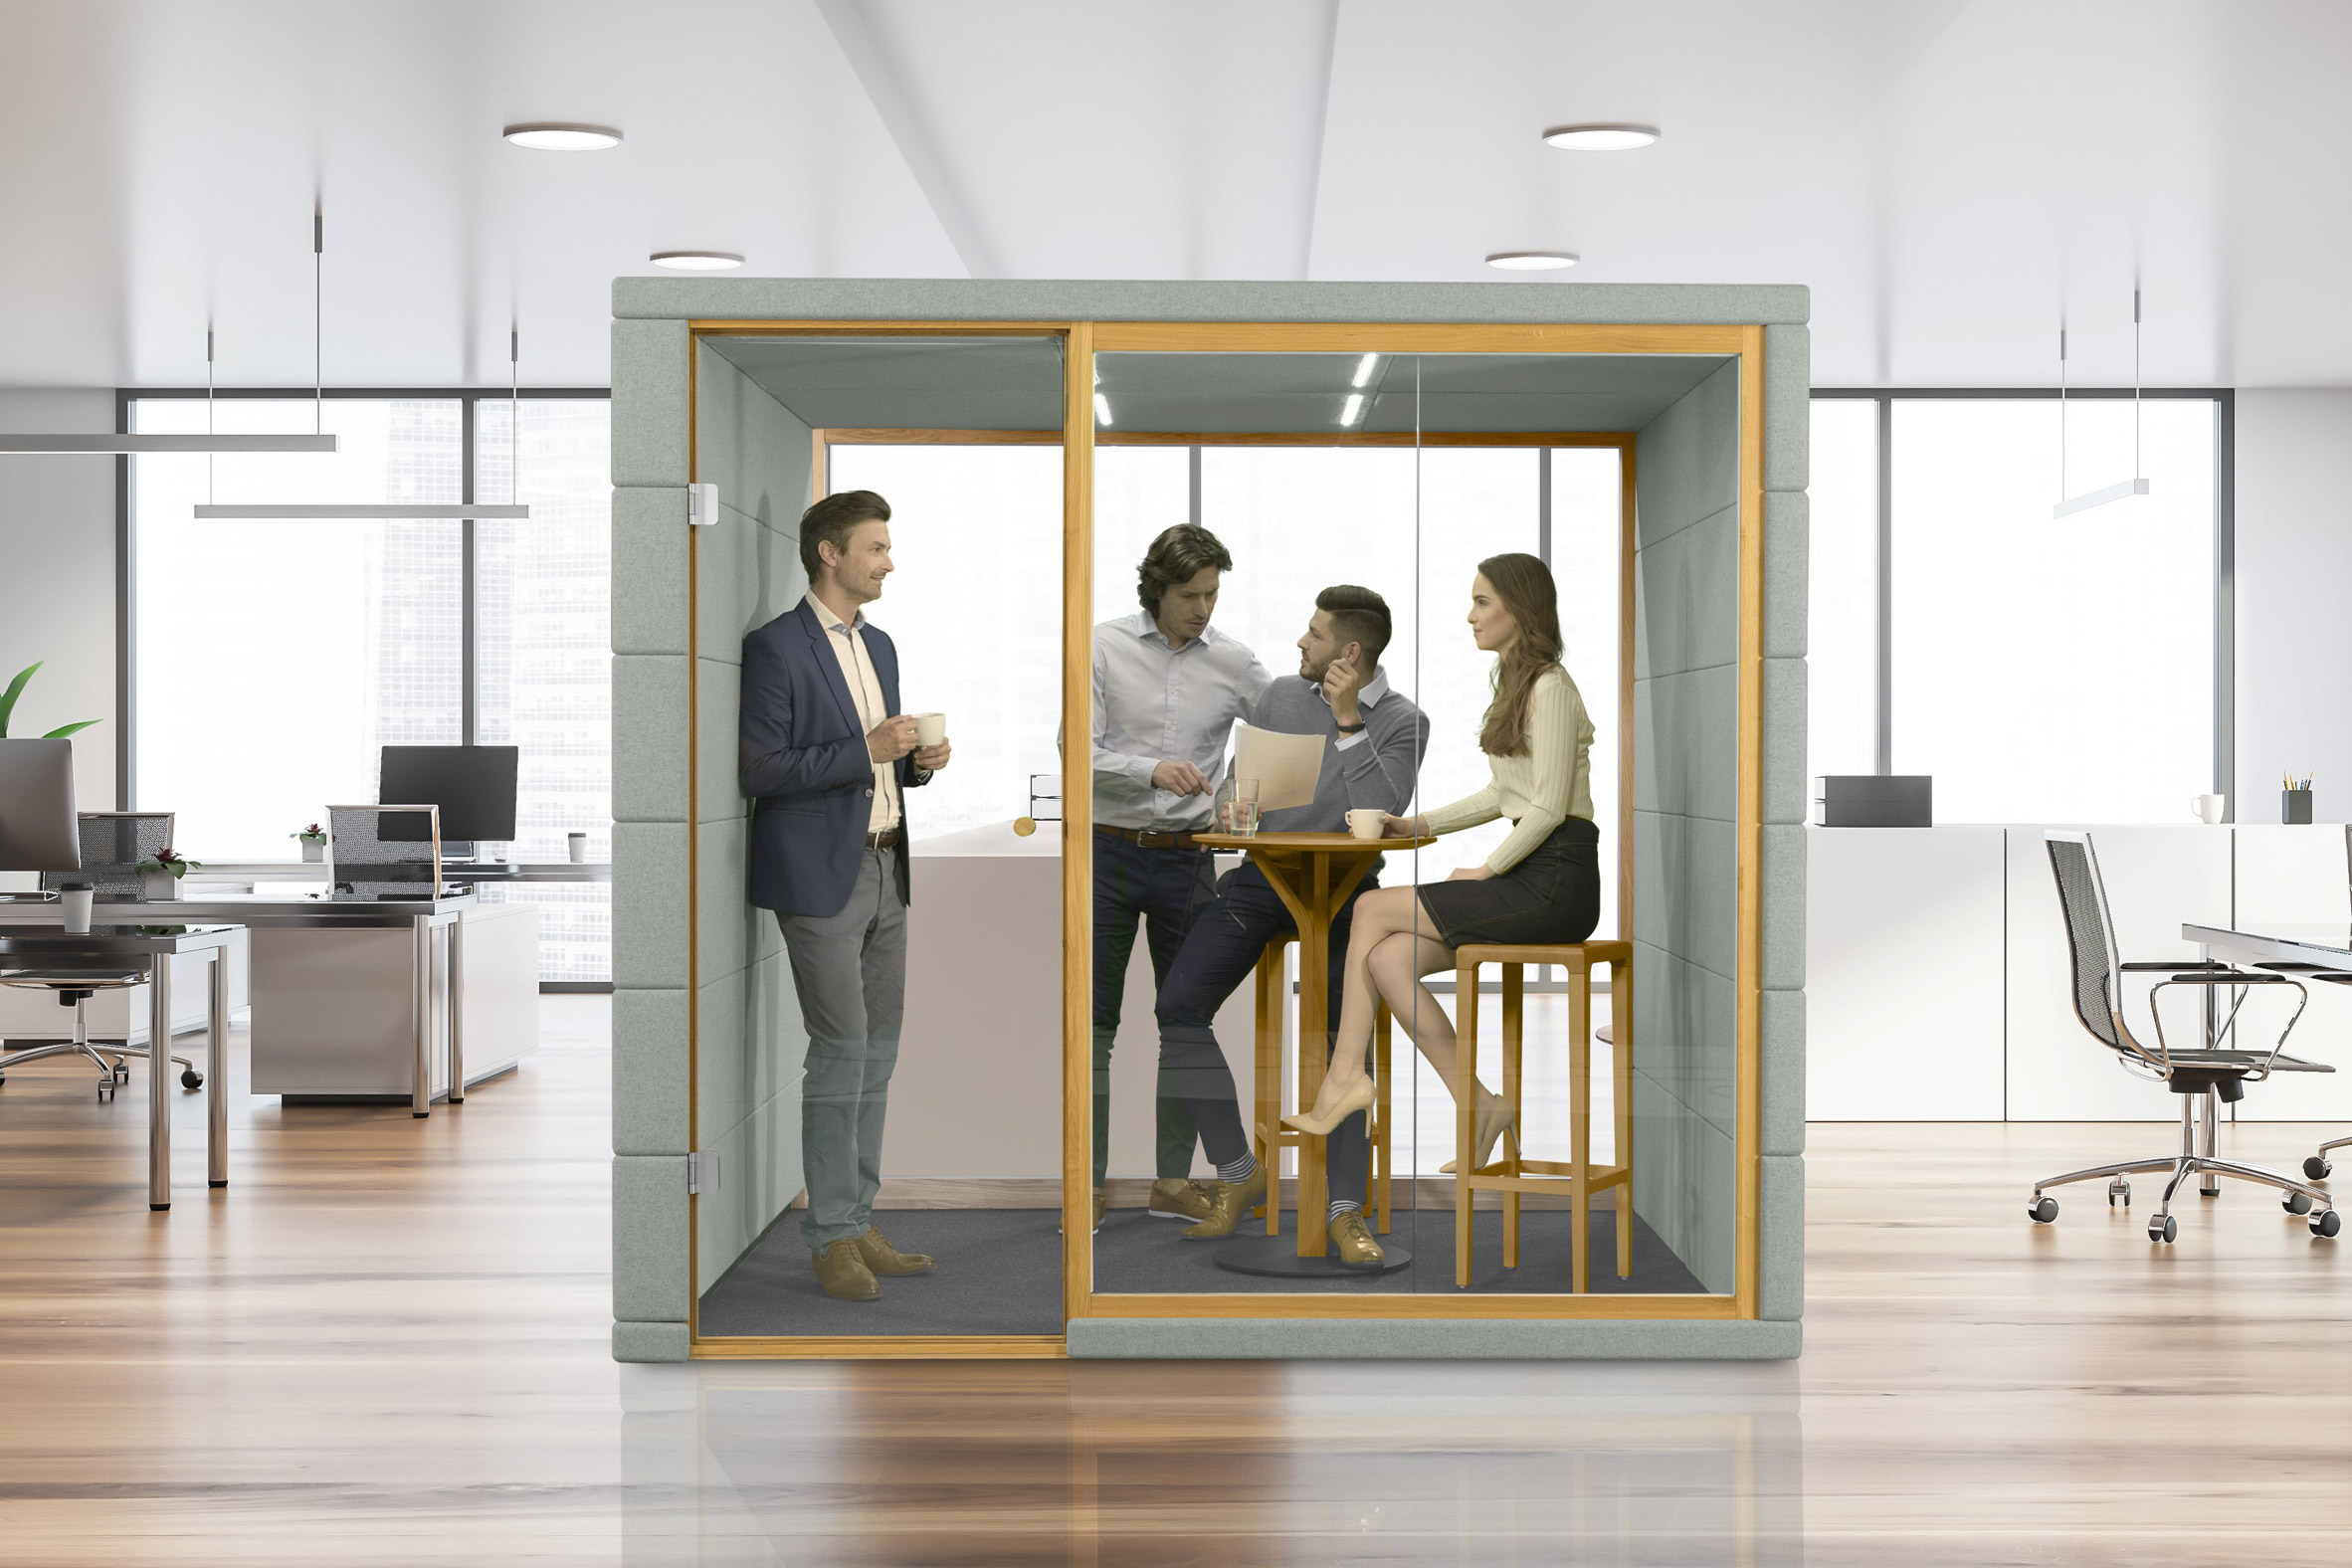 SilentLab unveils collection of standalone MicroOffices to shield workers from